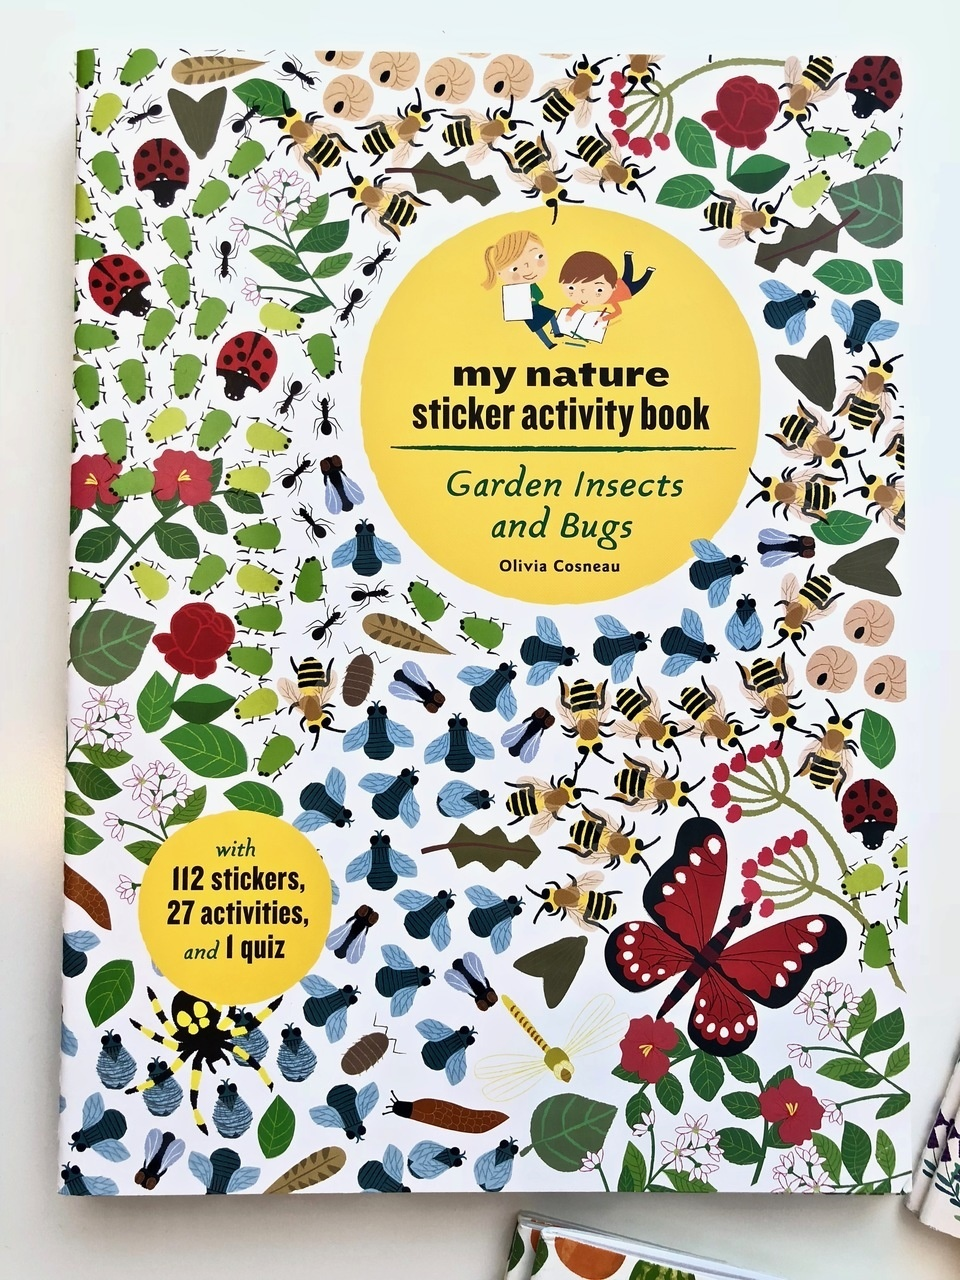 Hachette Sticker Activity Book: Garden Insects and Bugs